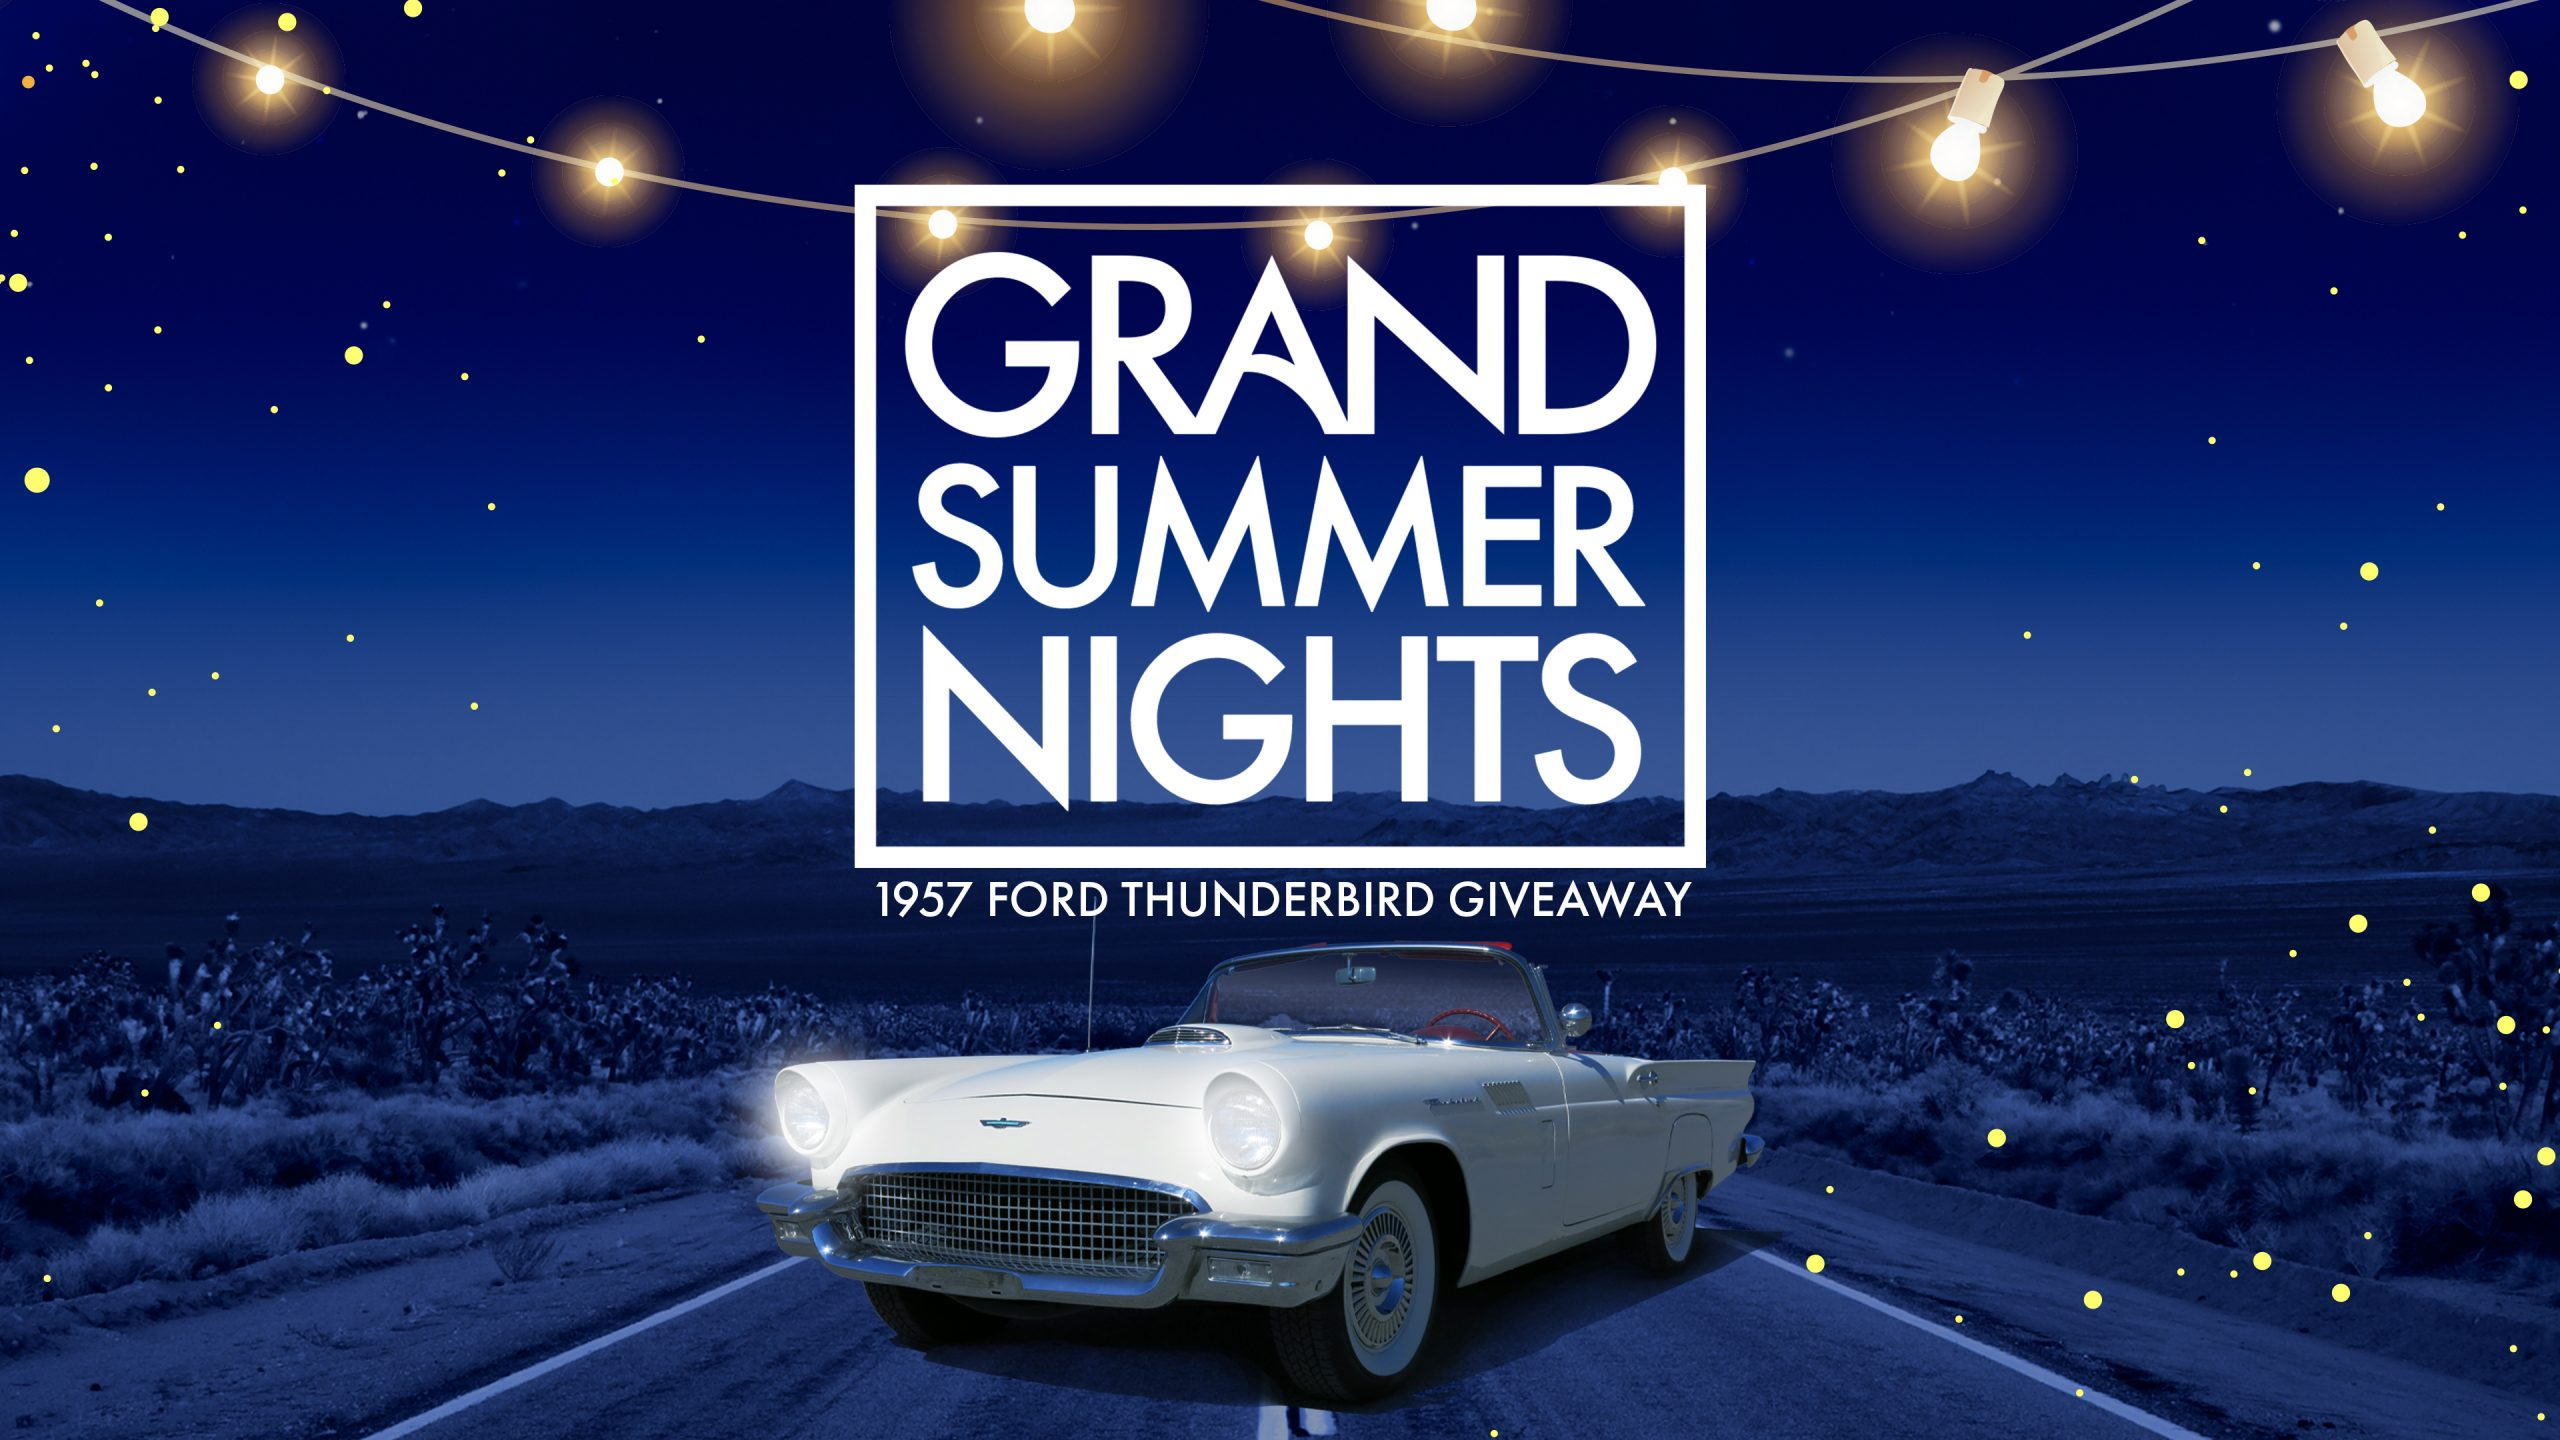 Grand Summer Nights Giveaway